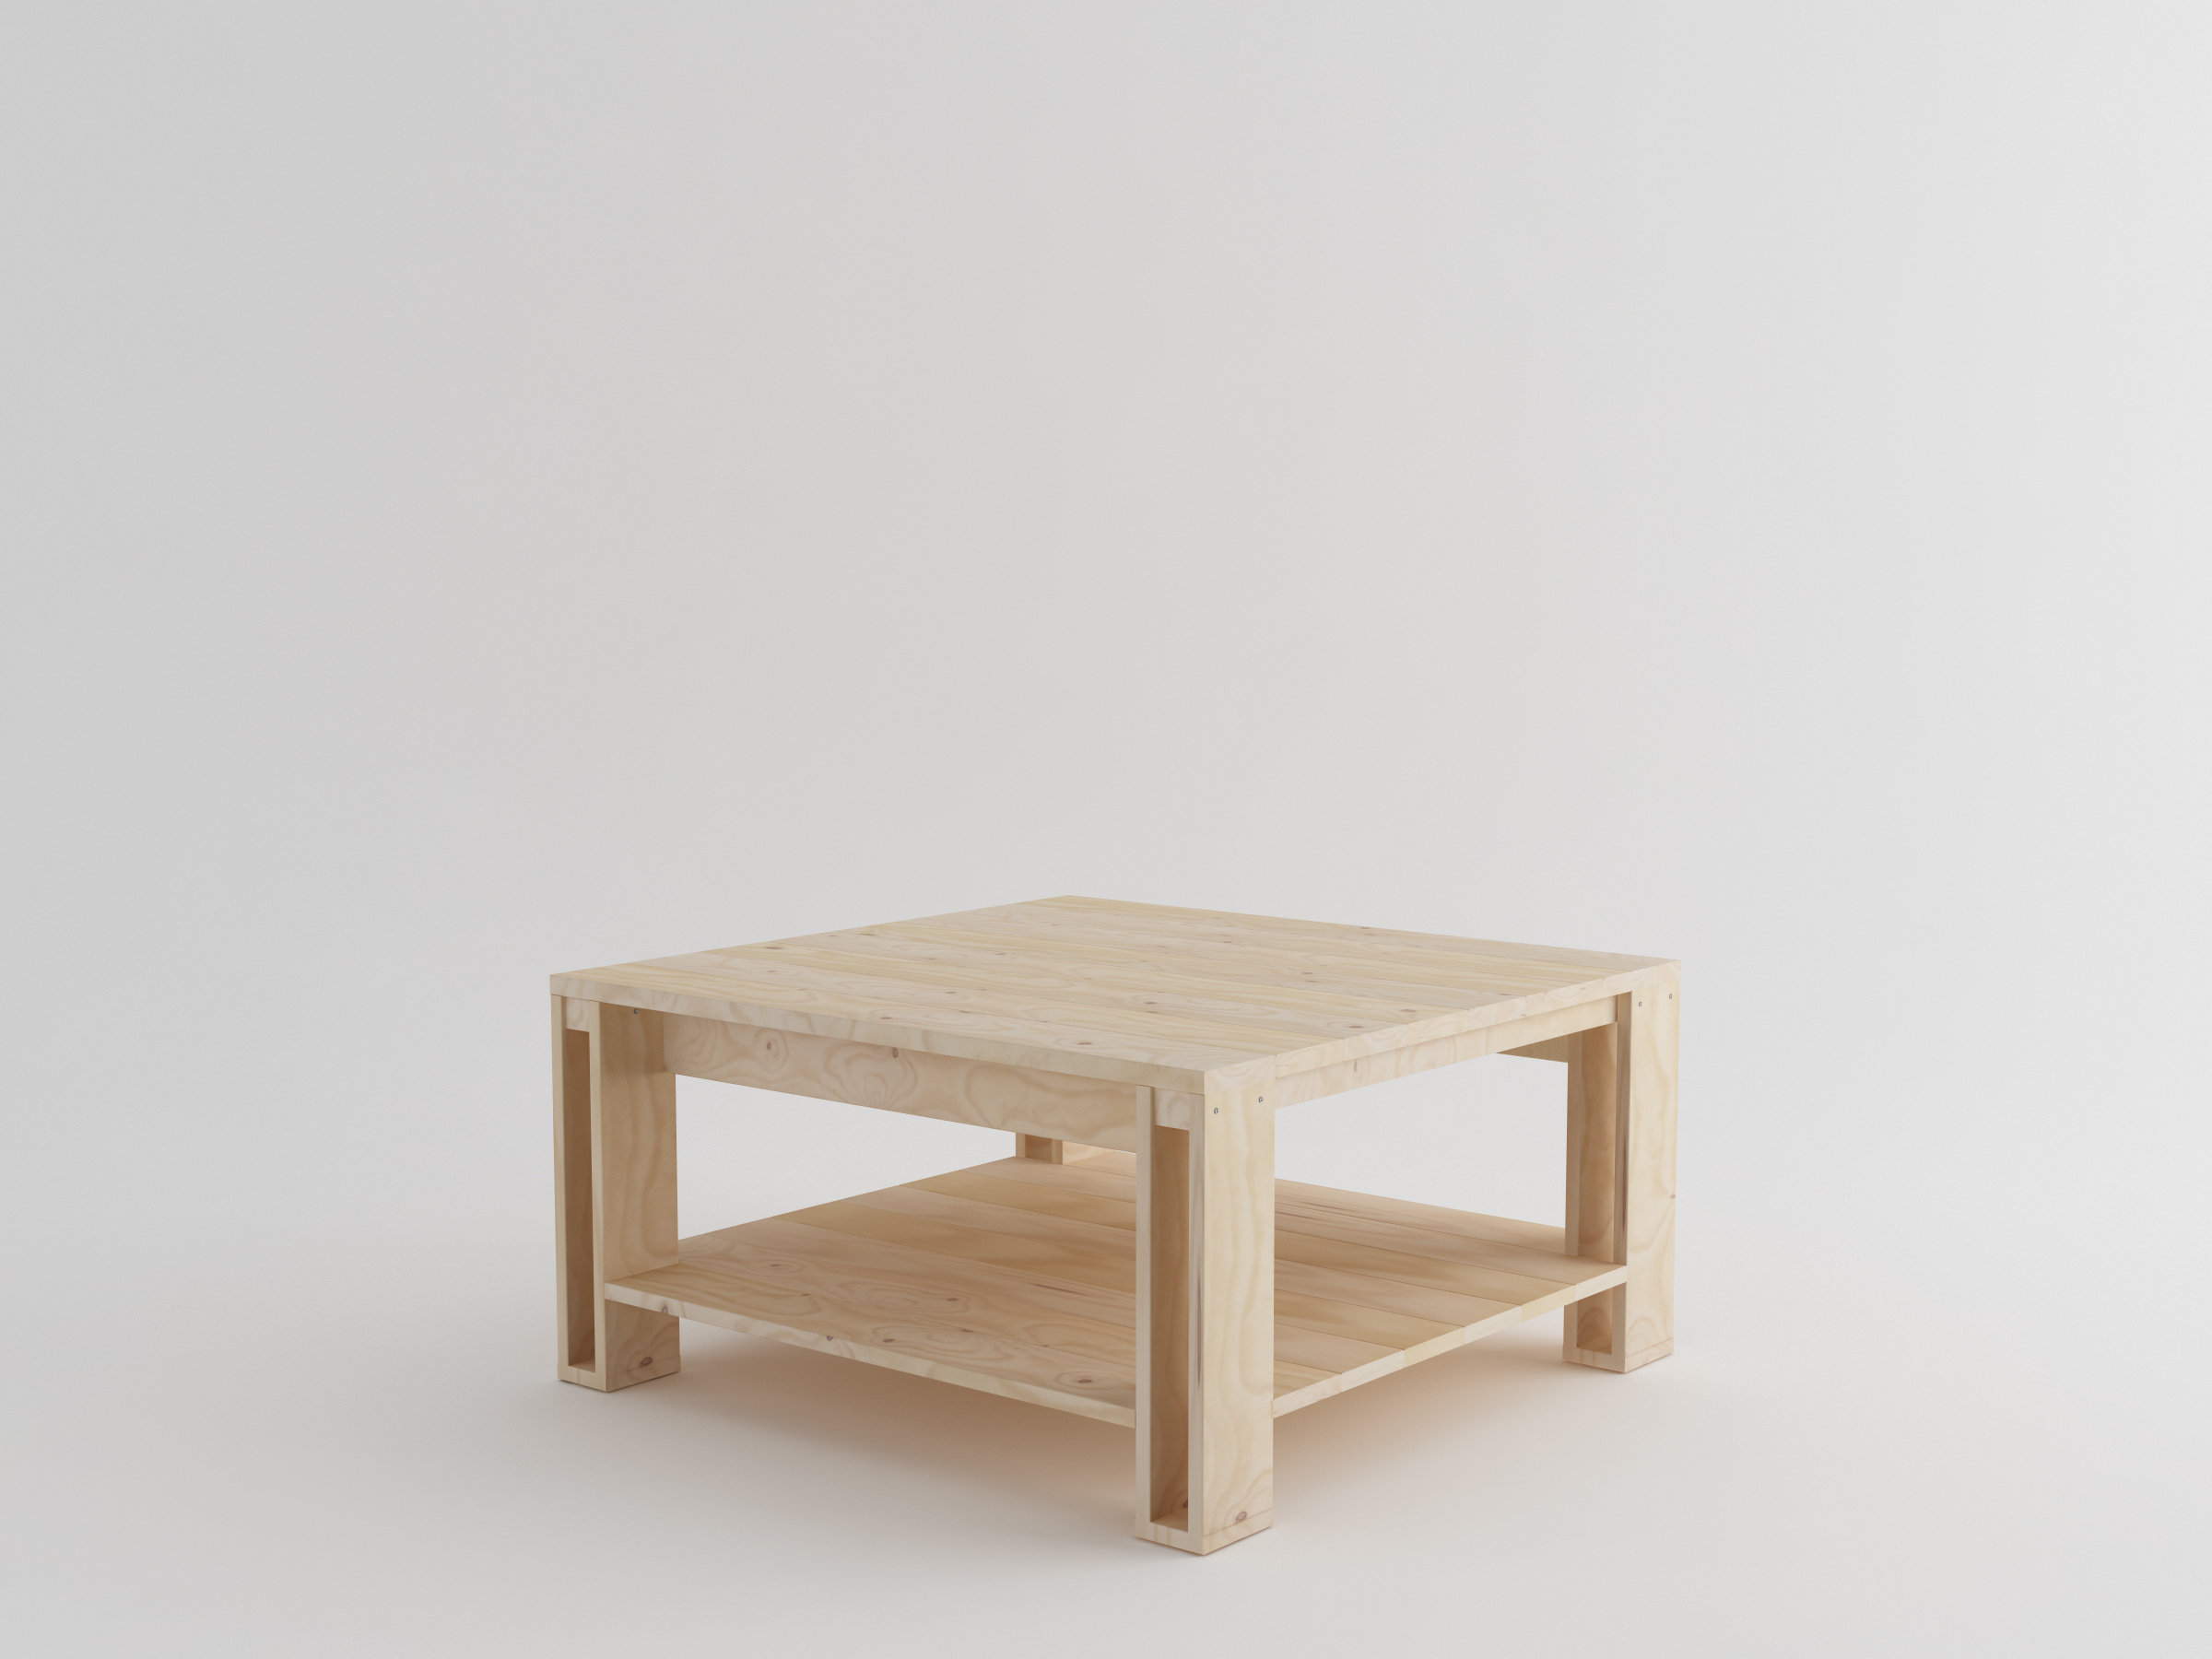 arina coffe table-lufe-silvia ceñal-01